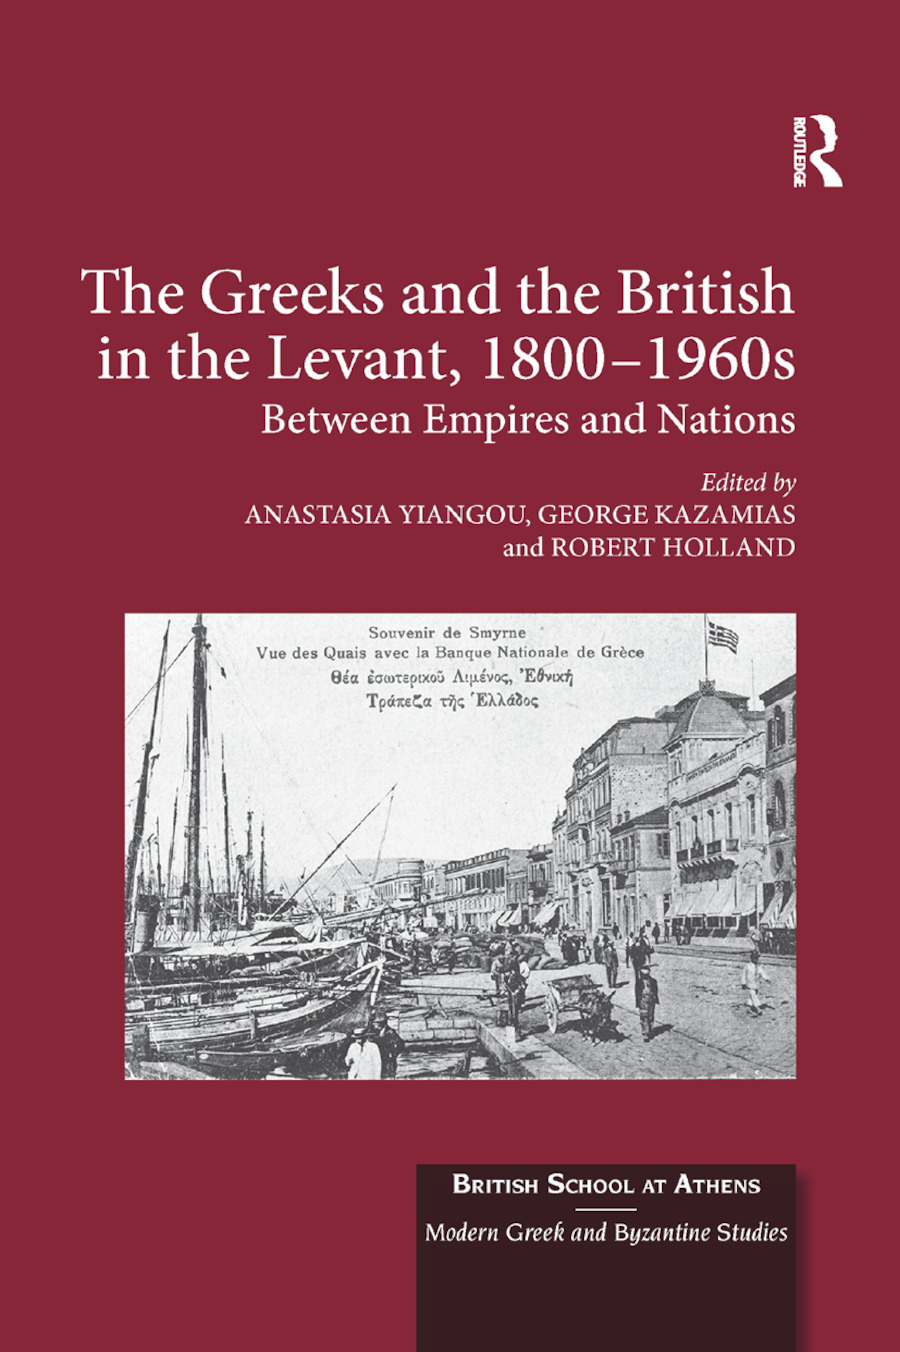 The Greeks and the British in the Levant, 1800-1960s: Between Empires and Nations book cover